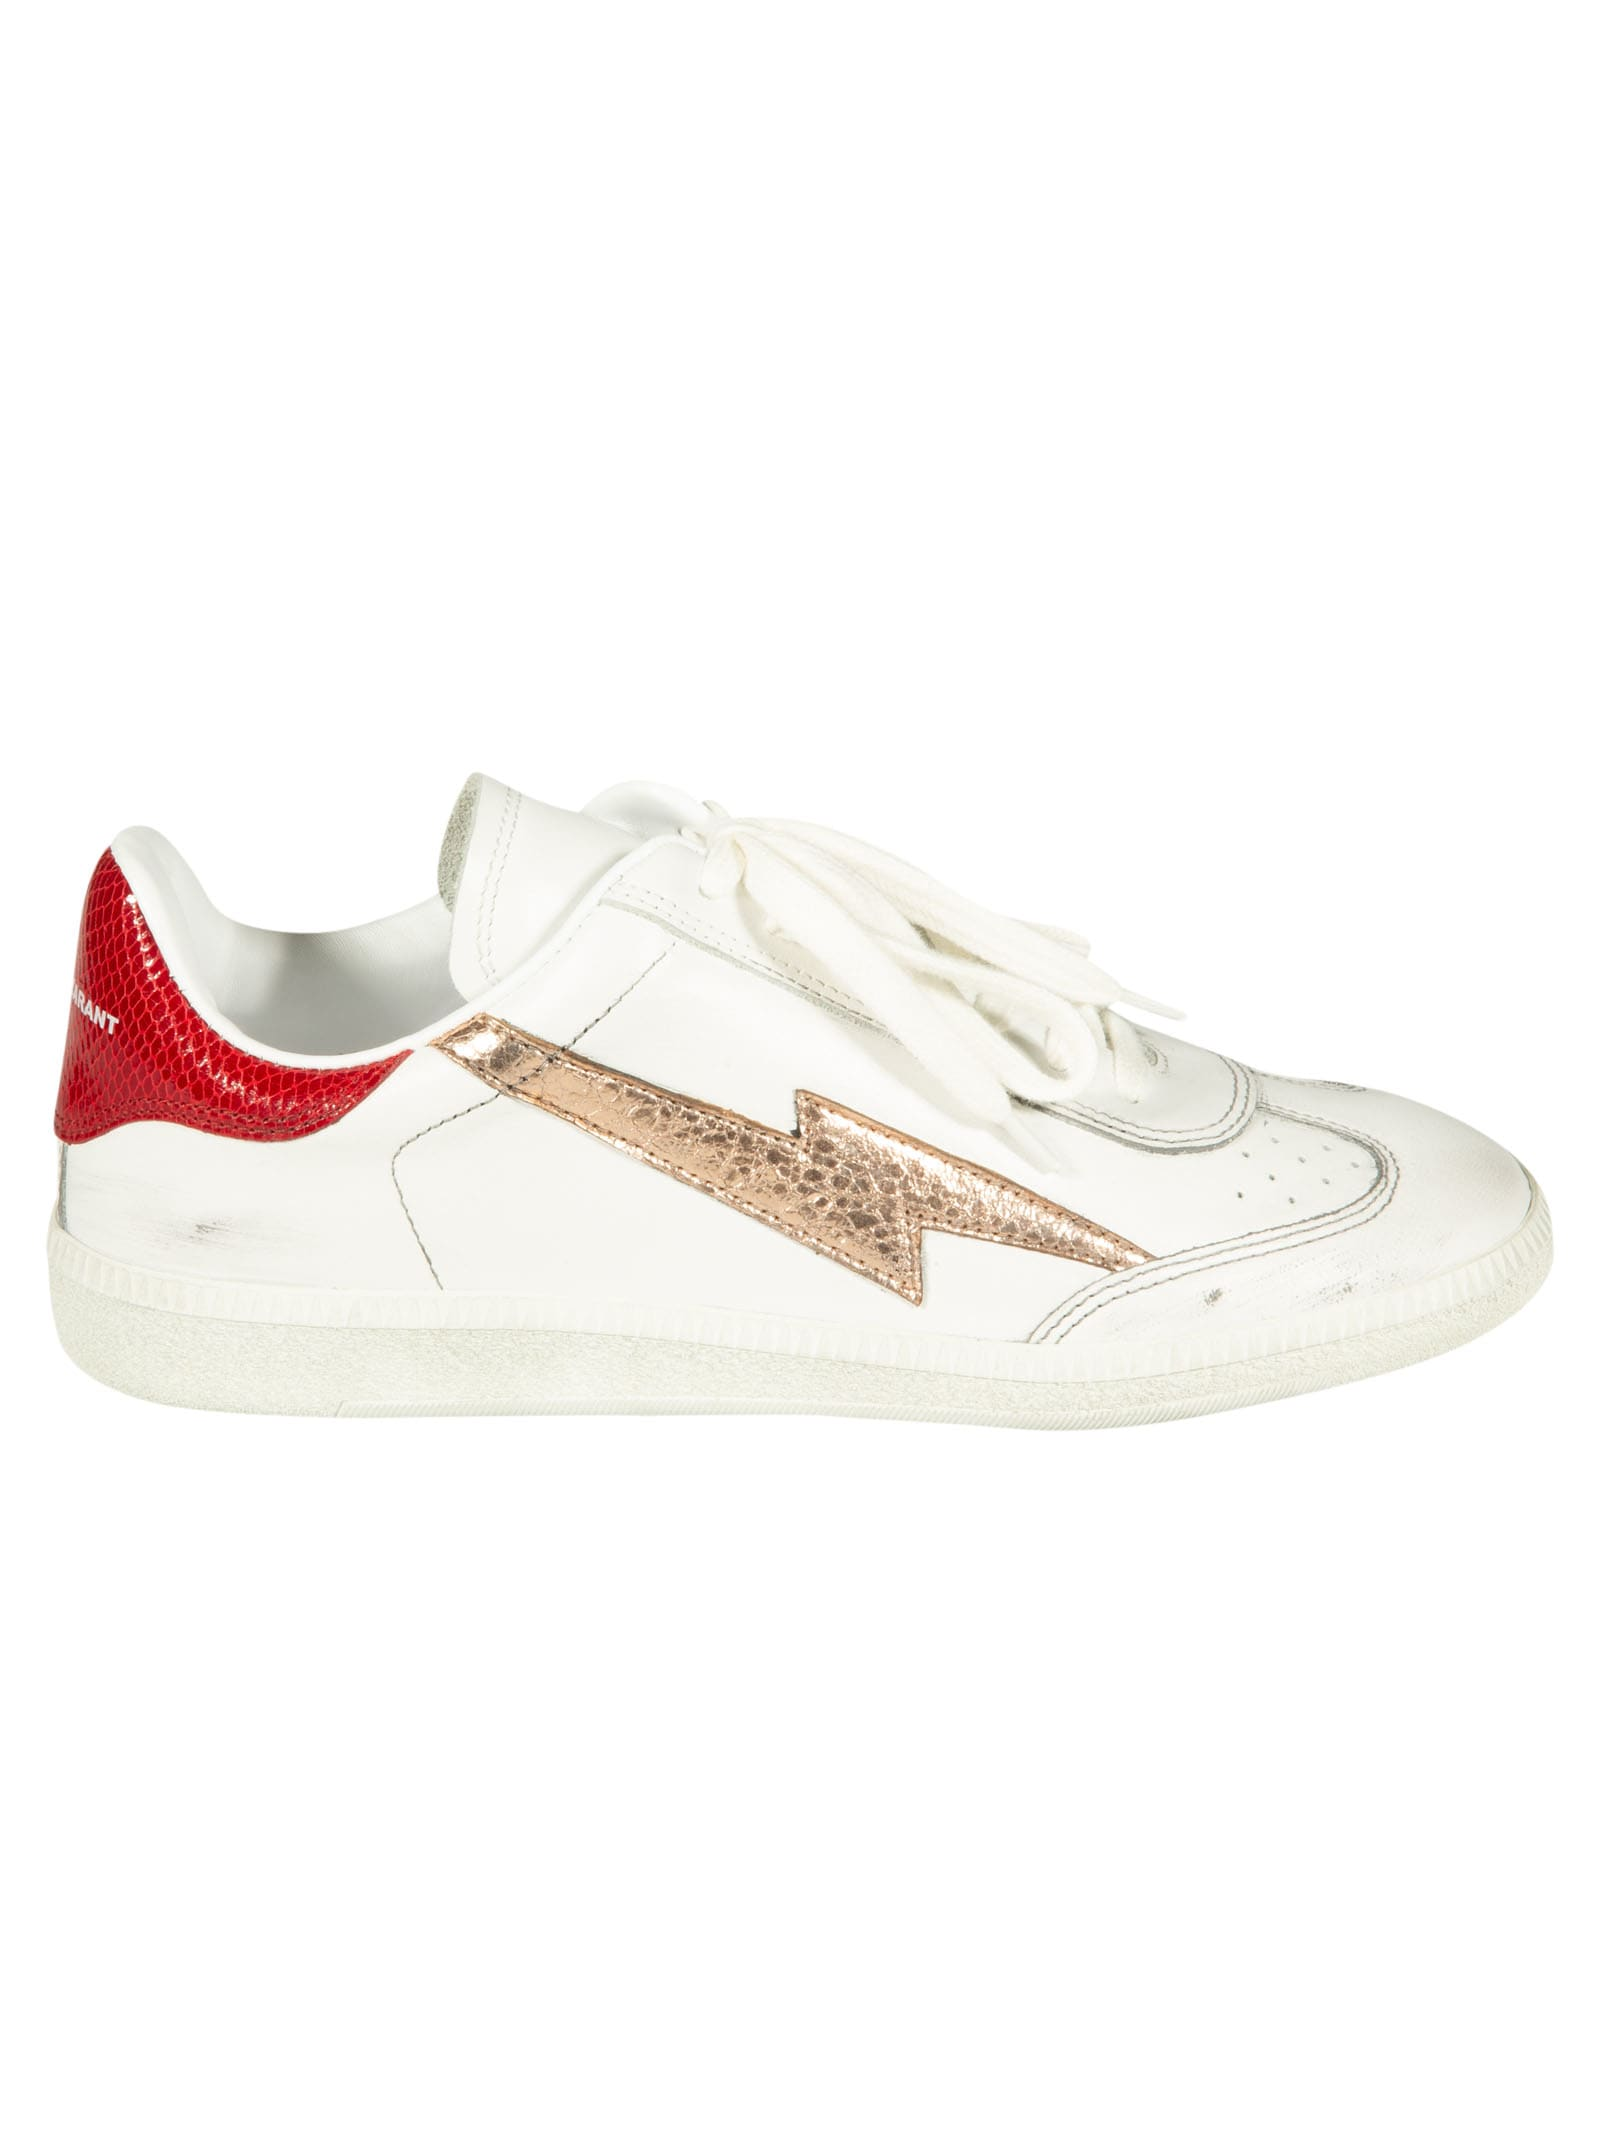 Isabel Marant Thunder Sneakers